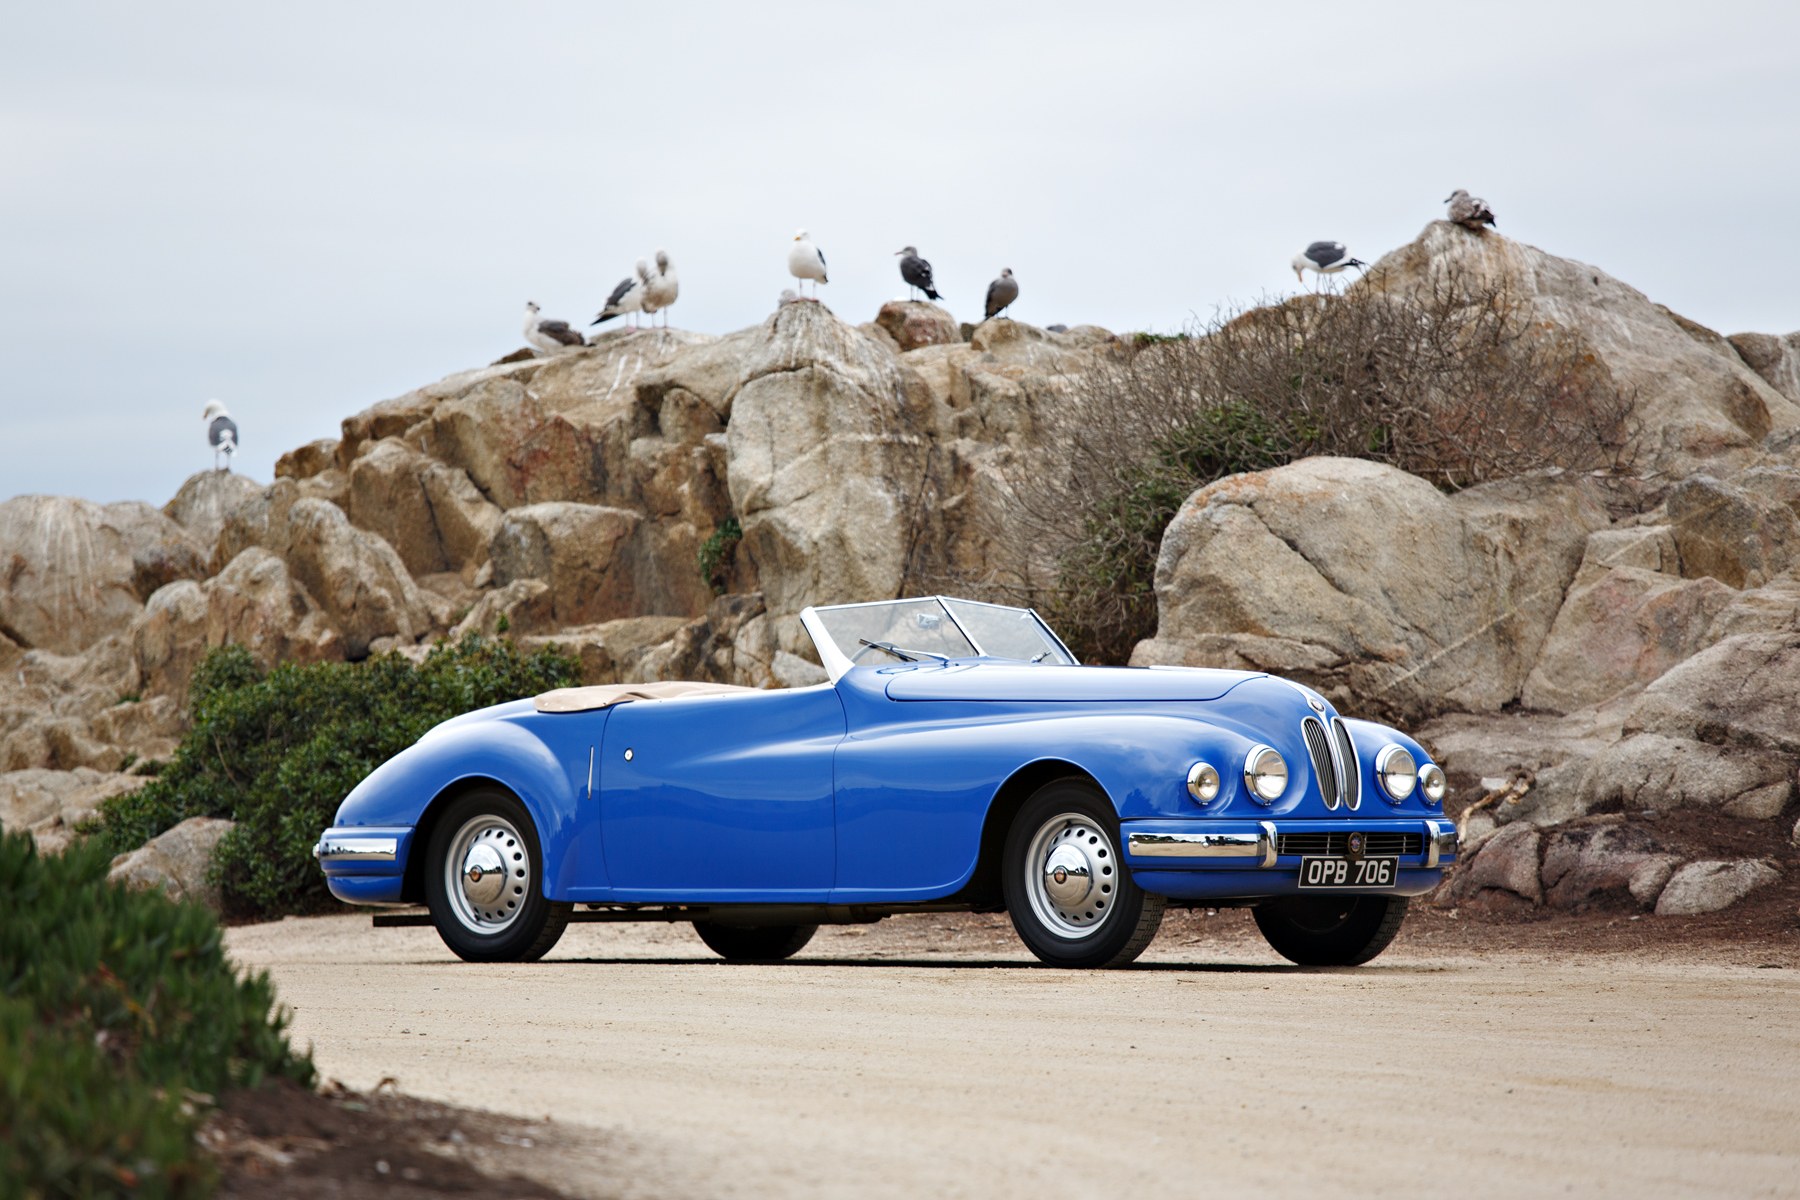 1949 Bristol 402 Cabriolet front 3/4 from the right